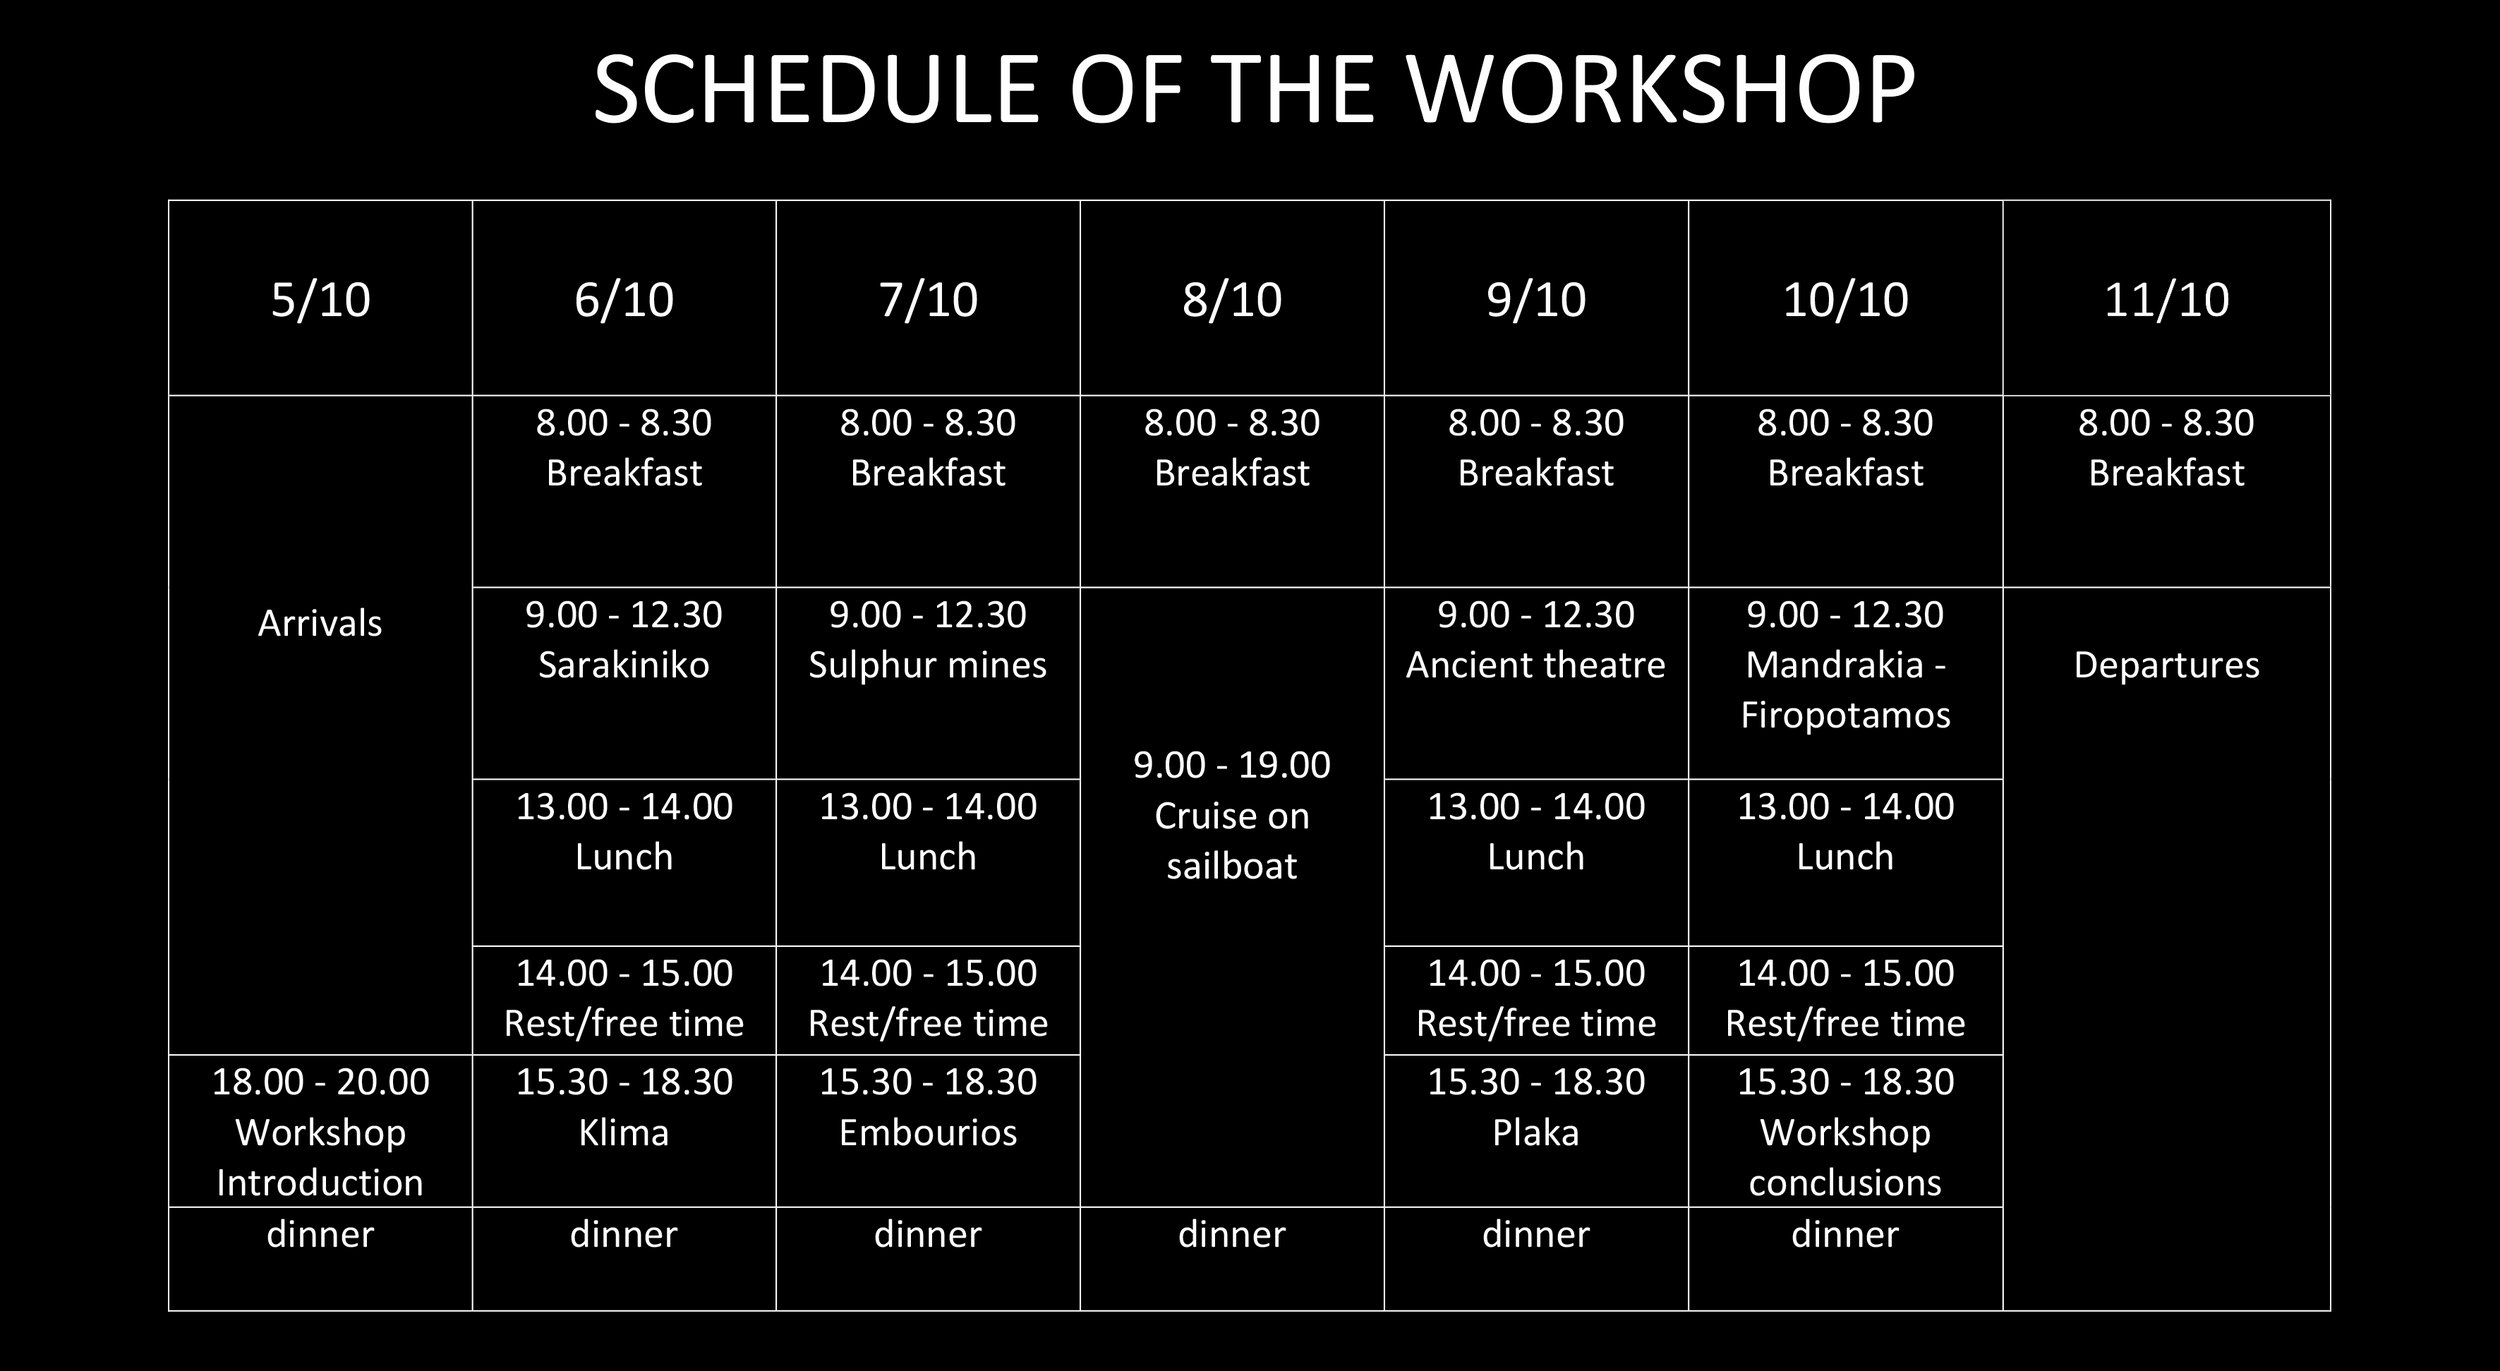 Microsoft Word - SCHEDULE OF THE WORKSHOP WHH.jpg